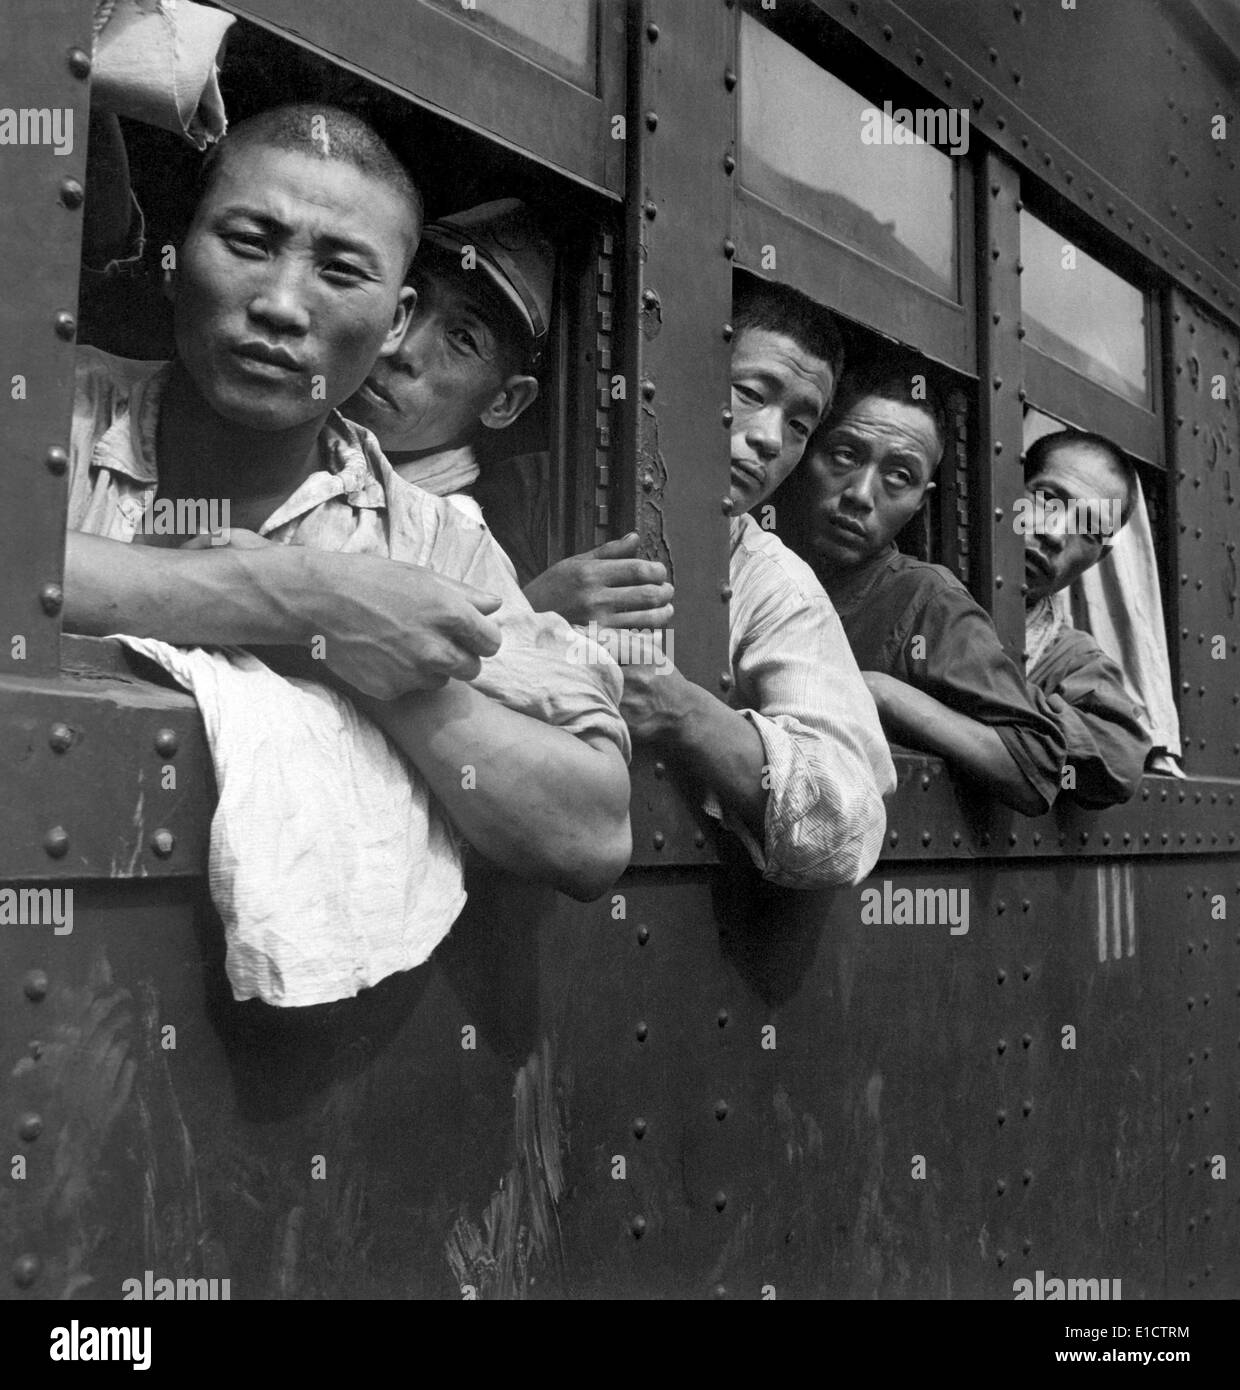 Discharged Japanese soldiers going home after the end of World War 2. Sept. 1945. (BSLOC_2013_14_280) - Stock Image